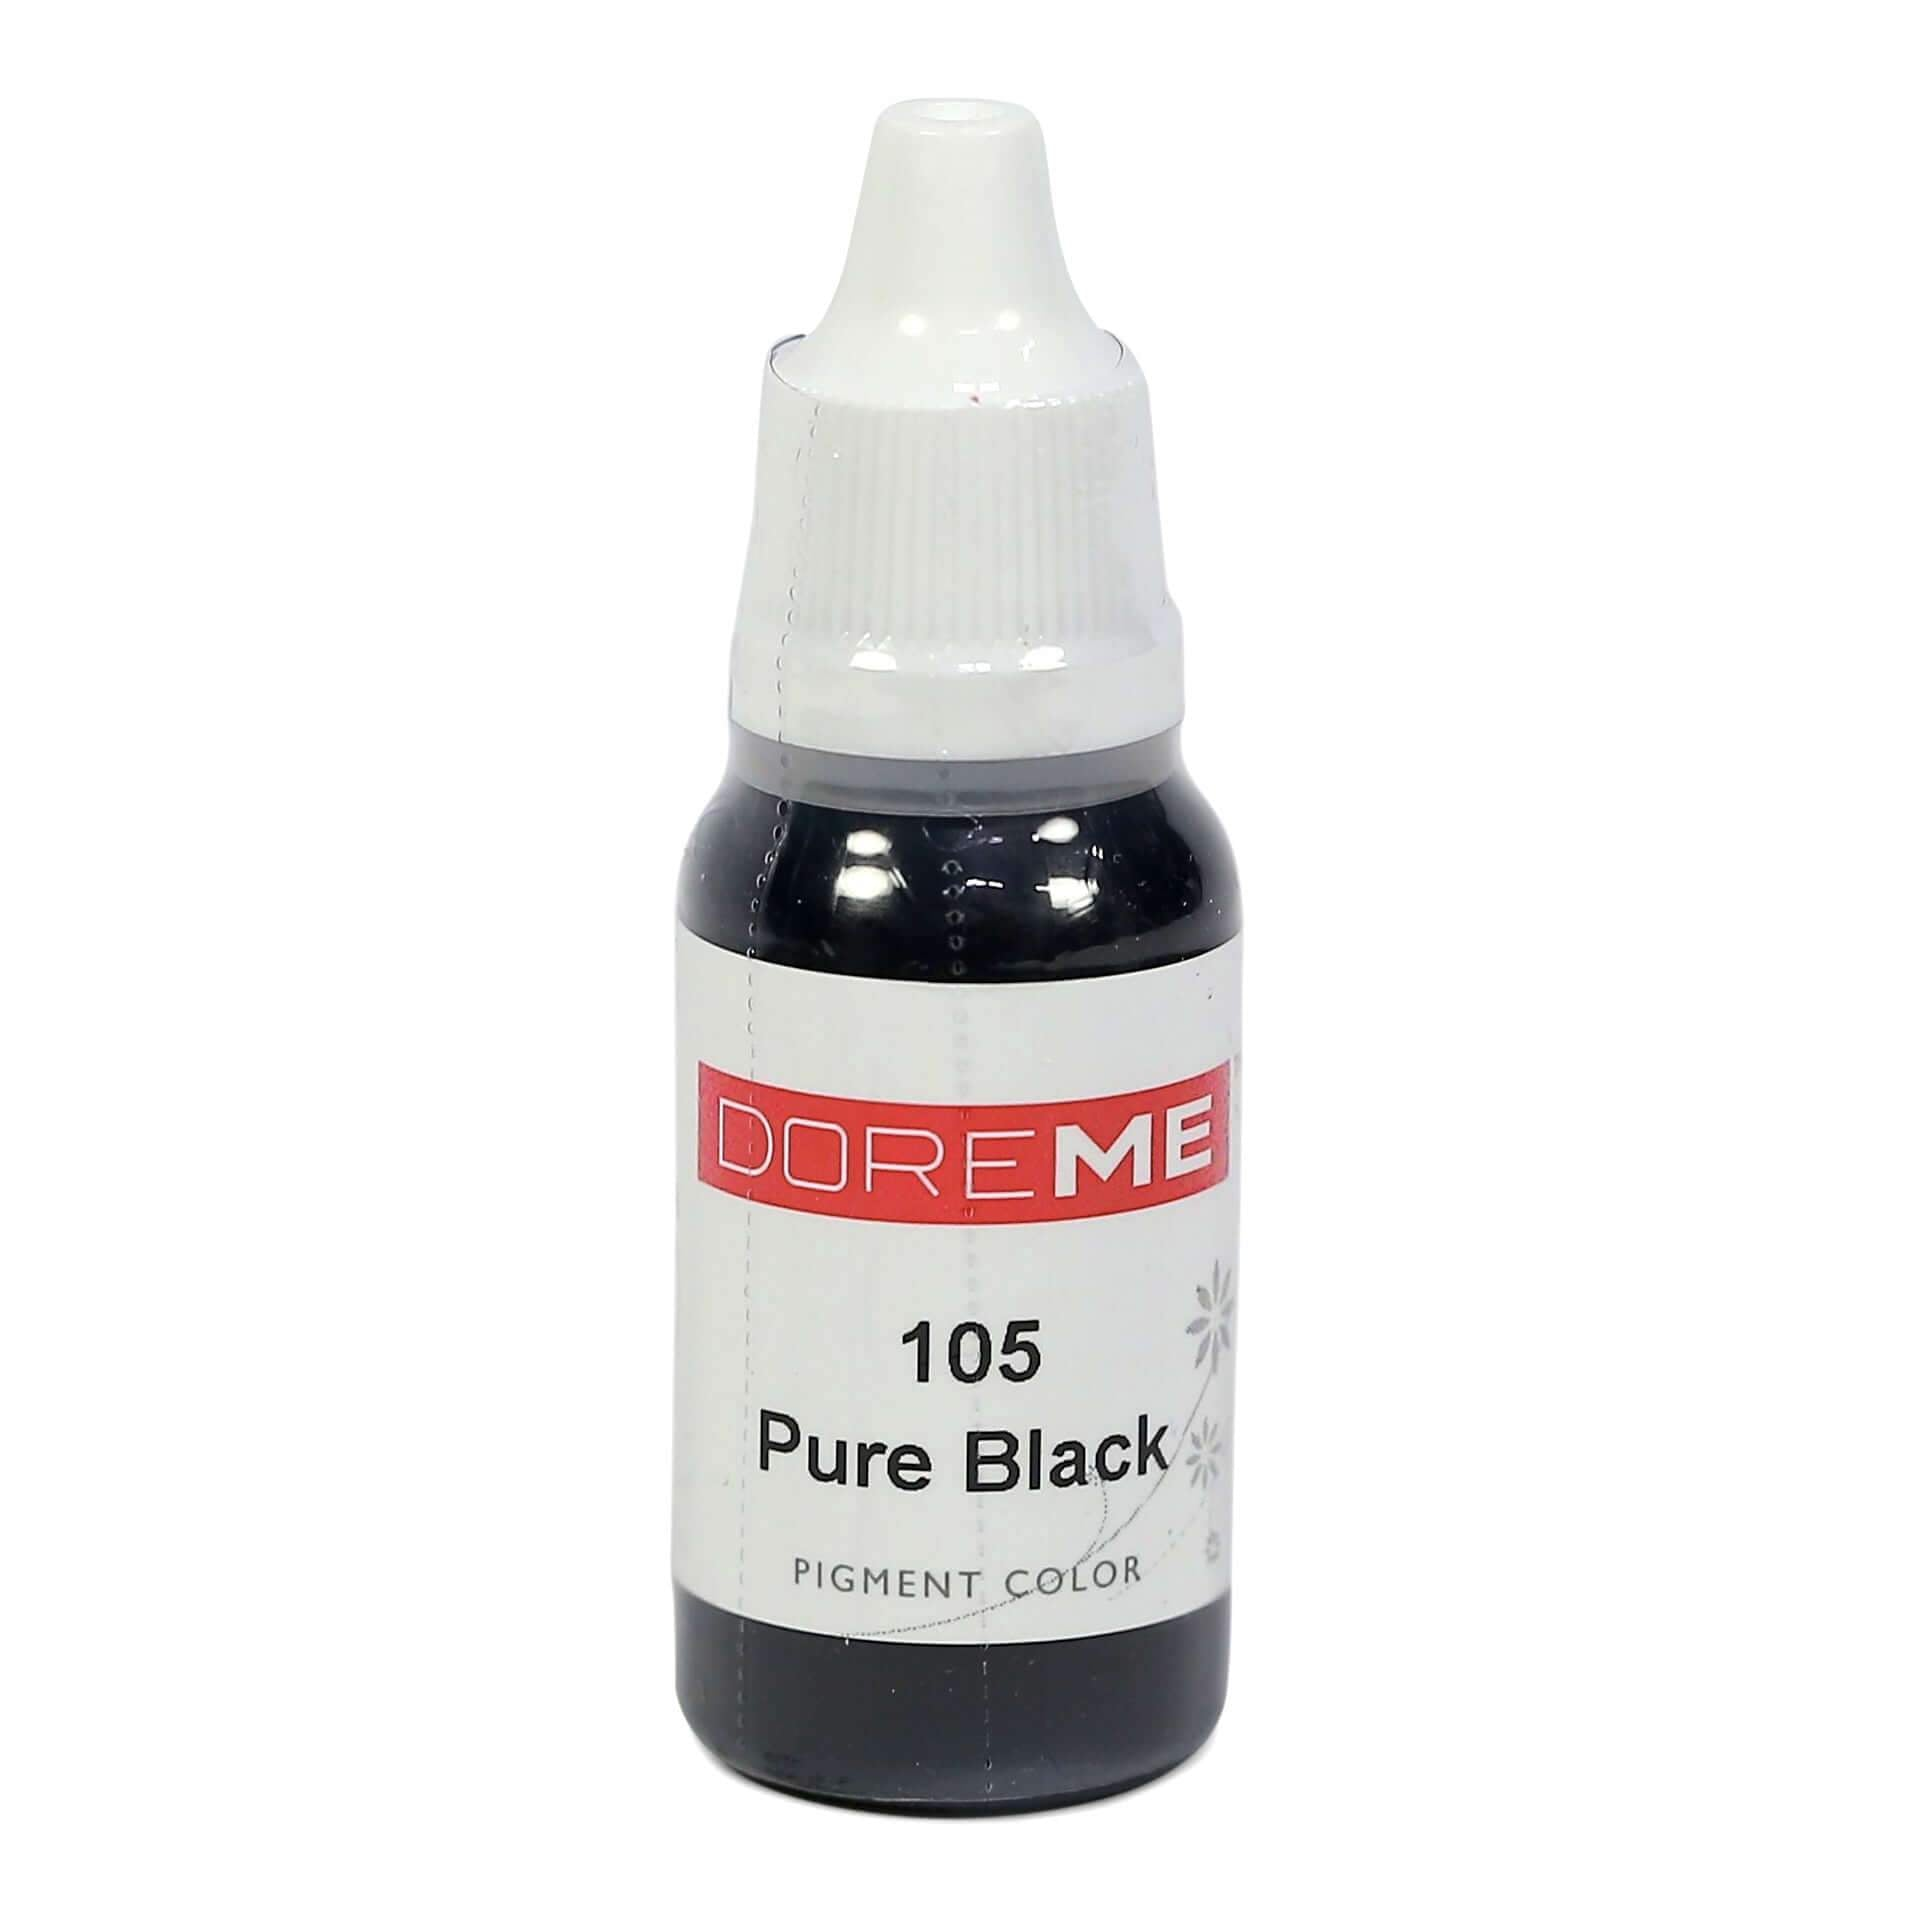 Permanent Makeup pigments Doreme Micropigmentation Eyebrow, Eyeliner, Lip Colours 105 Pure Black (c) - Beautiful Ink UK trade and wholesale supplier